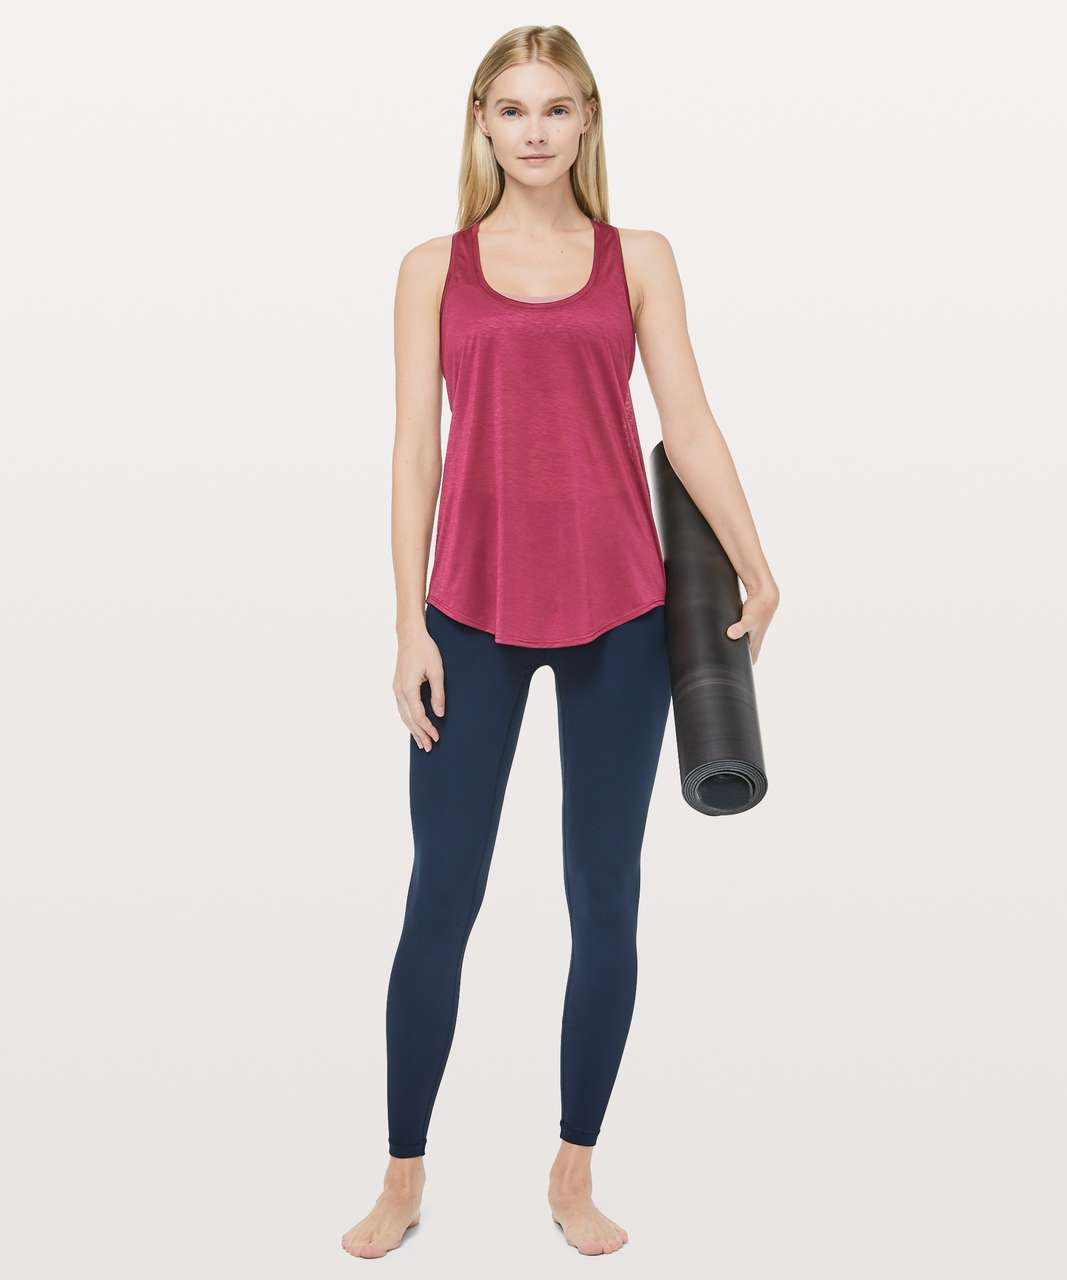 Lululemon All Love Tank - Star Ruby